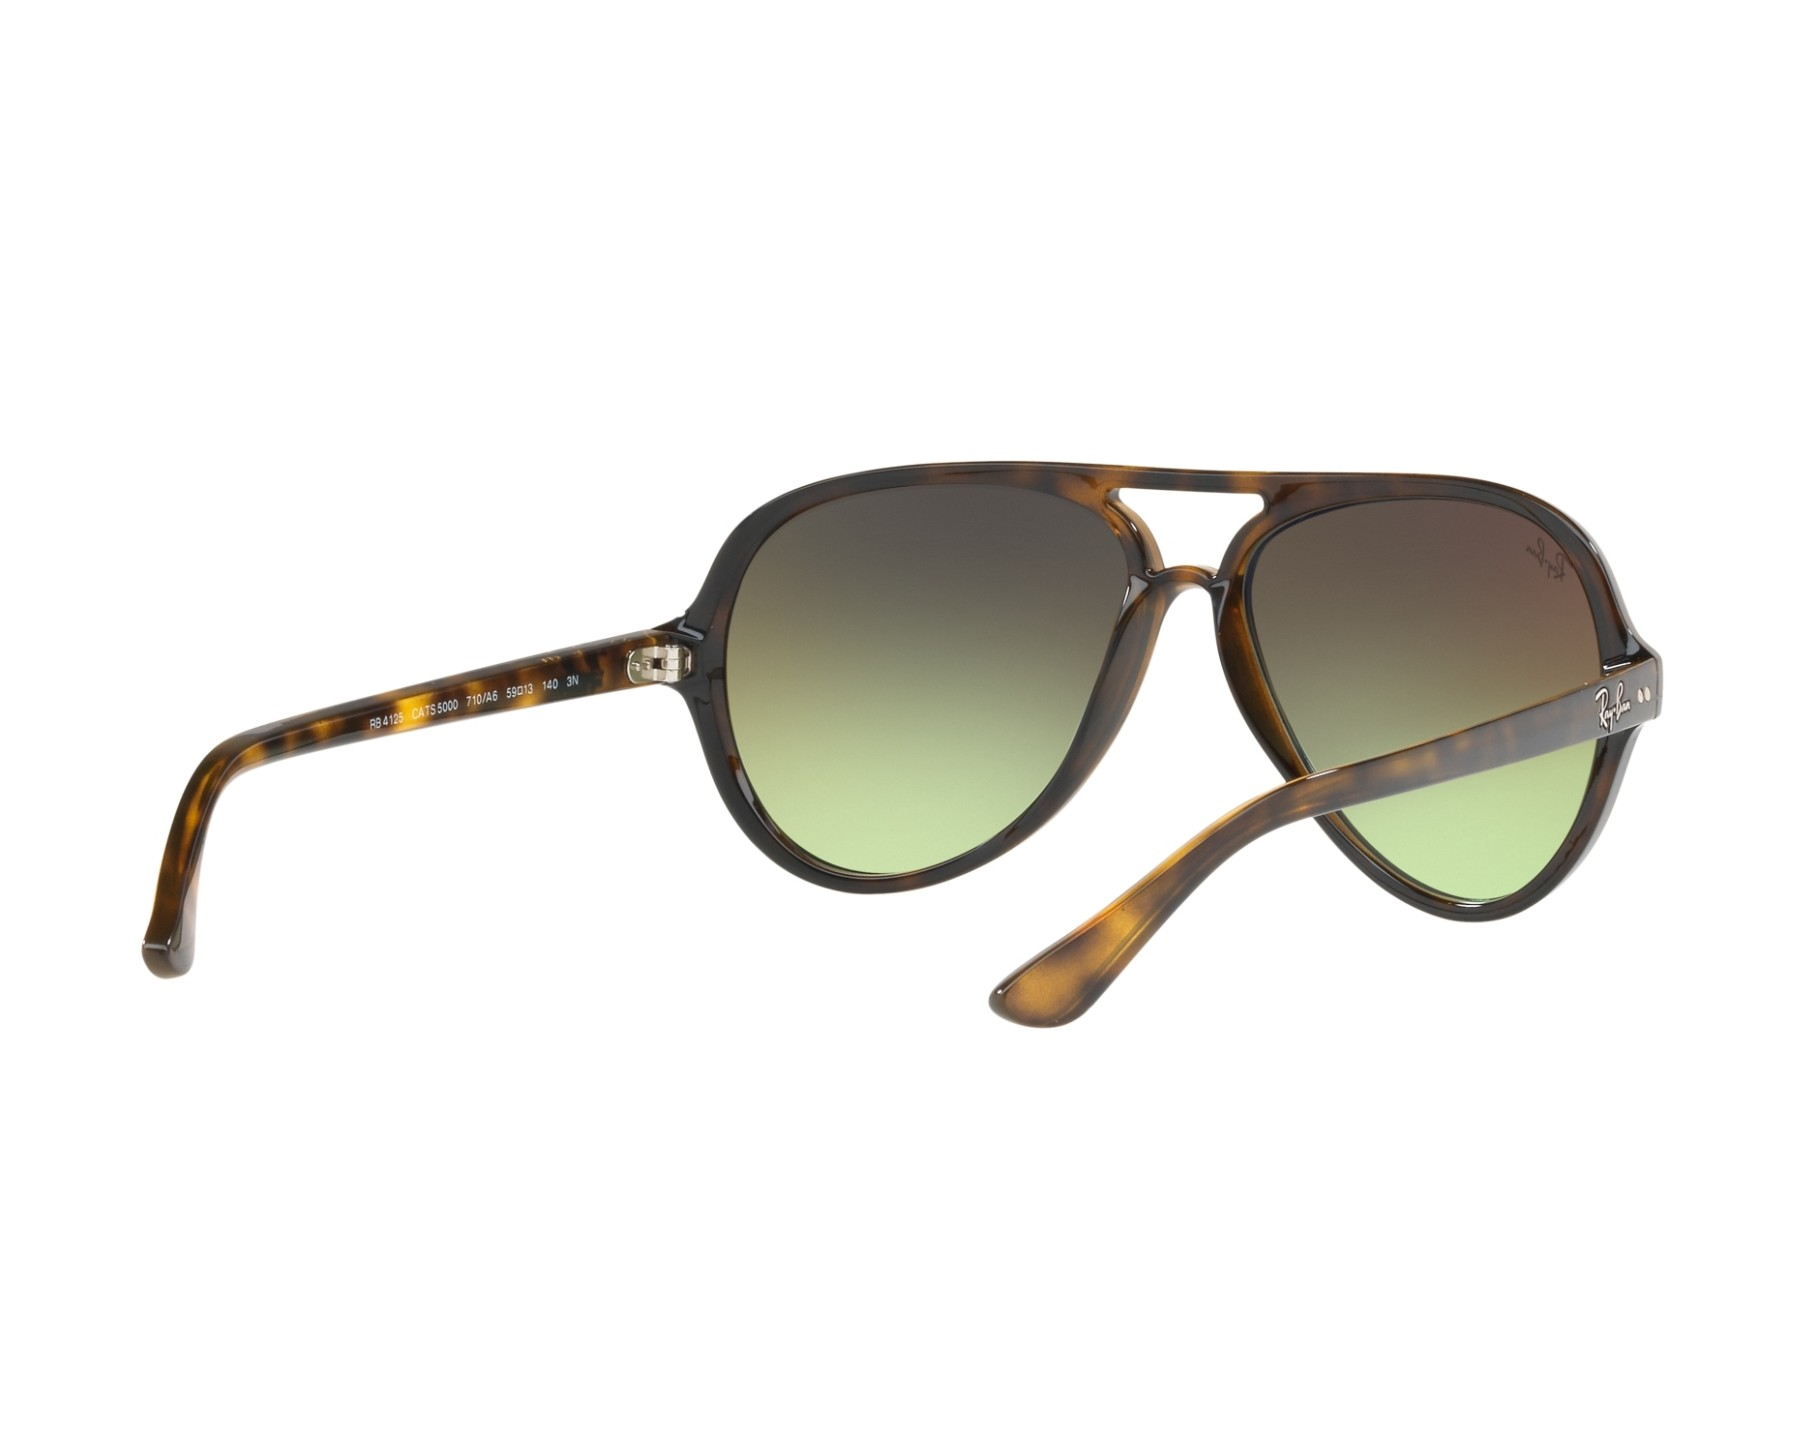 f98a3c9aad Ray Ban Rb 4125 Fr - Bitterroot Public Library